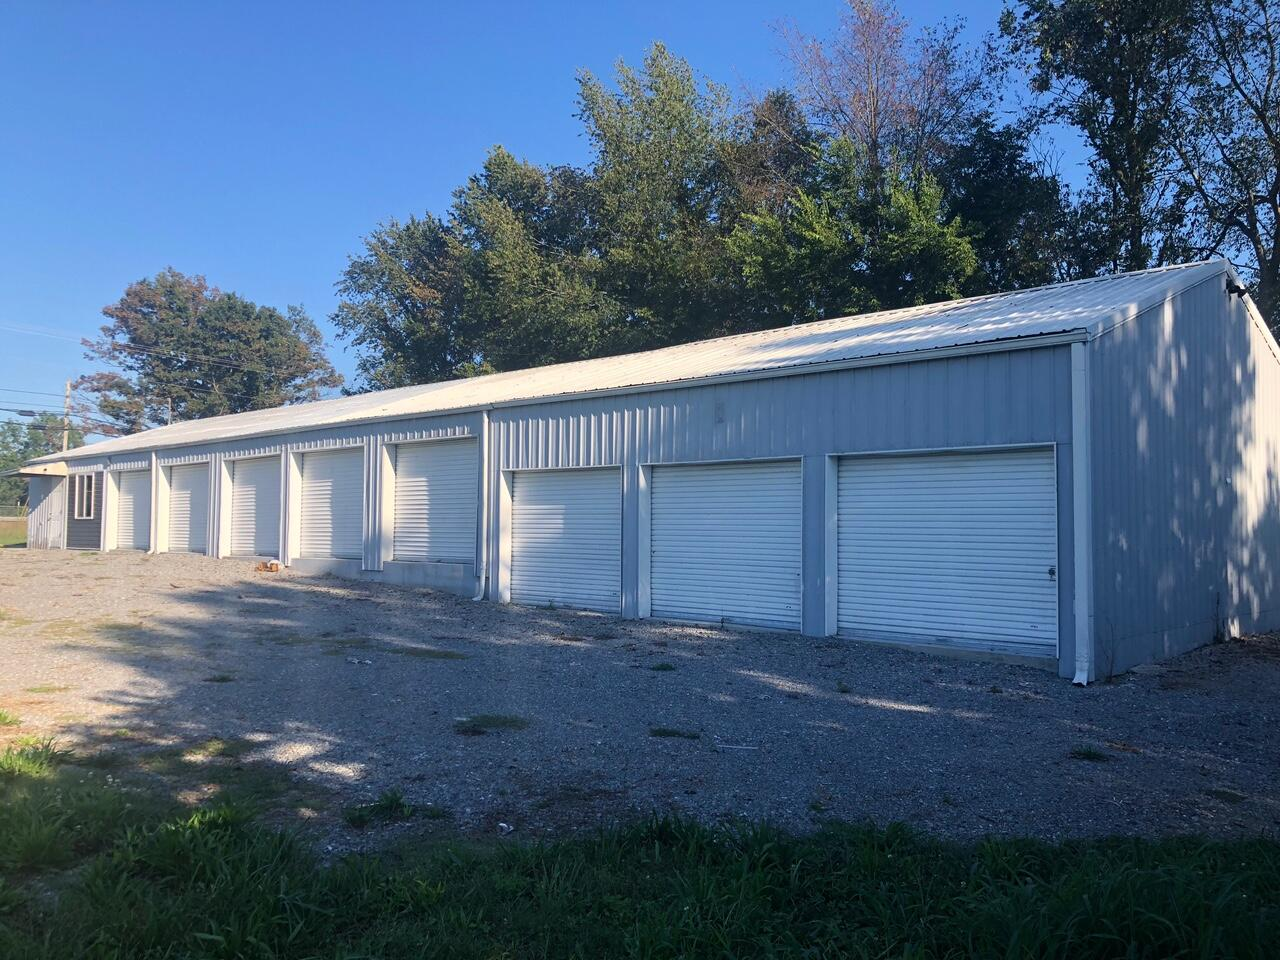 377 Somerset Street, Stanford, Kentucky 40484, ,Comm/prof/ind,For Sale,Somerset,20119787